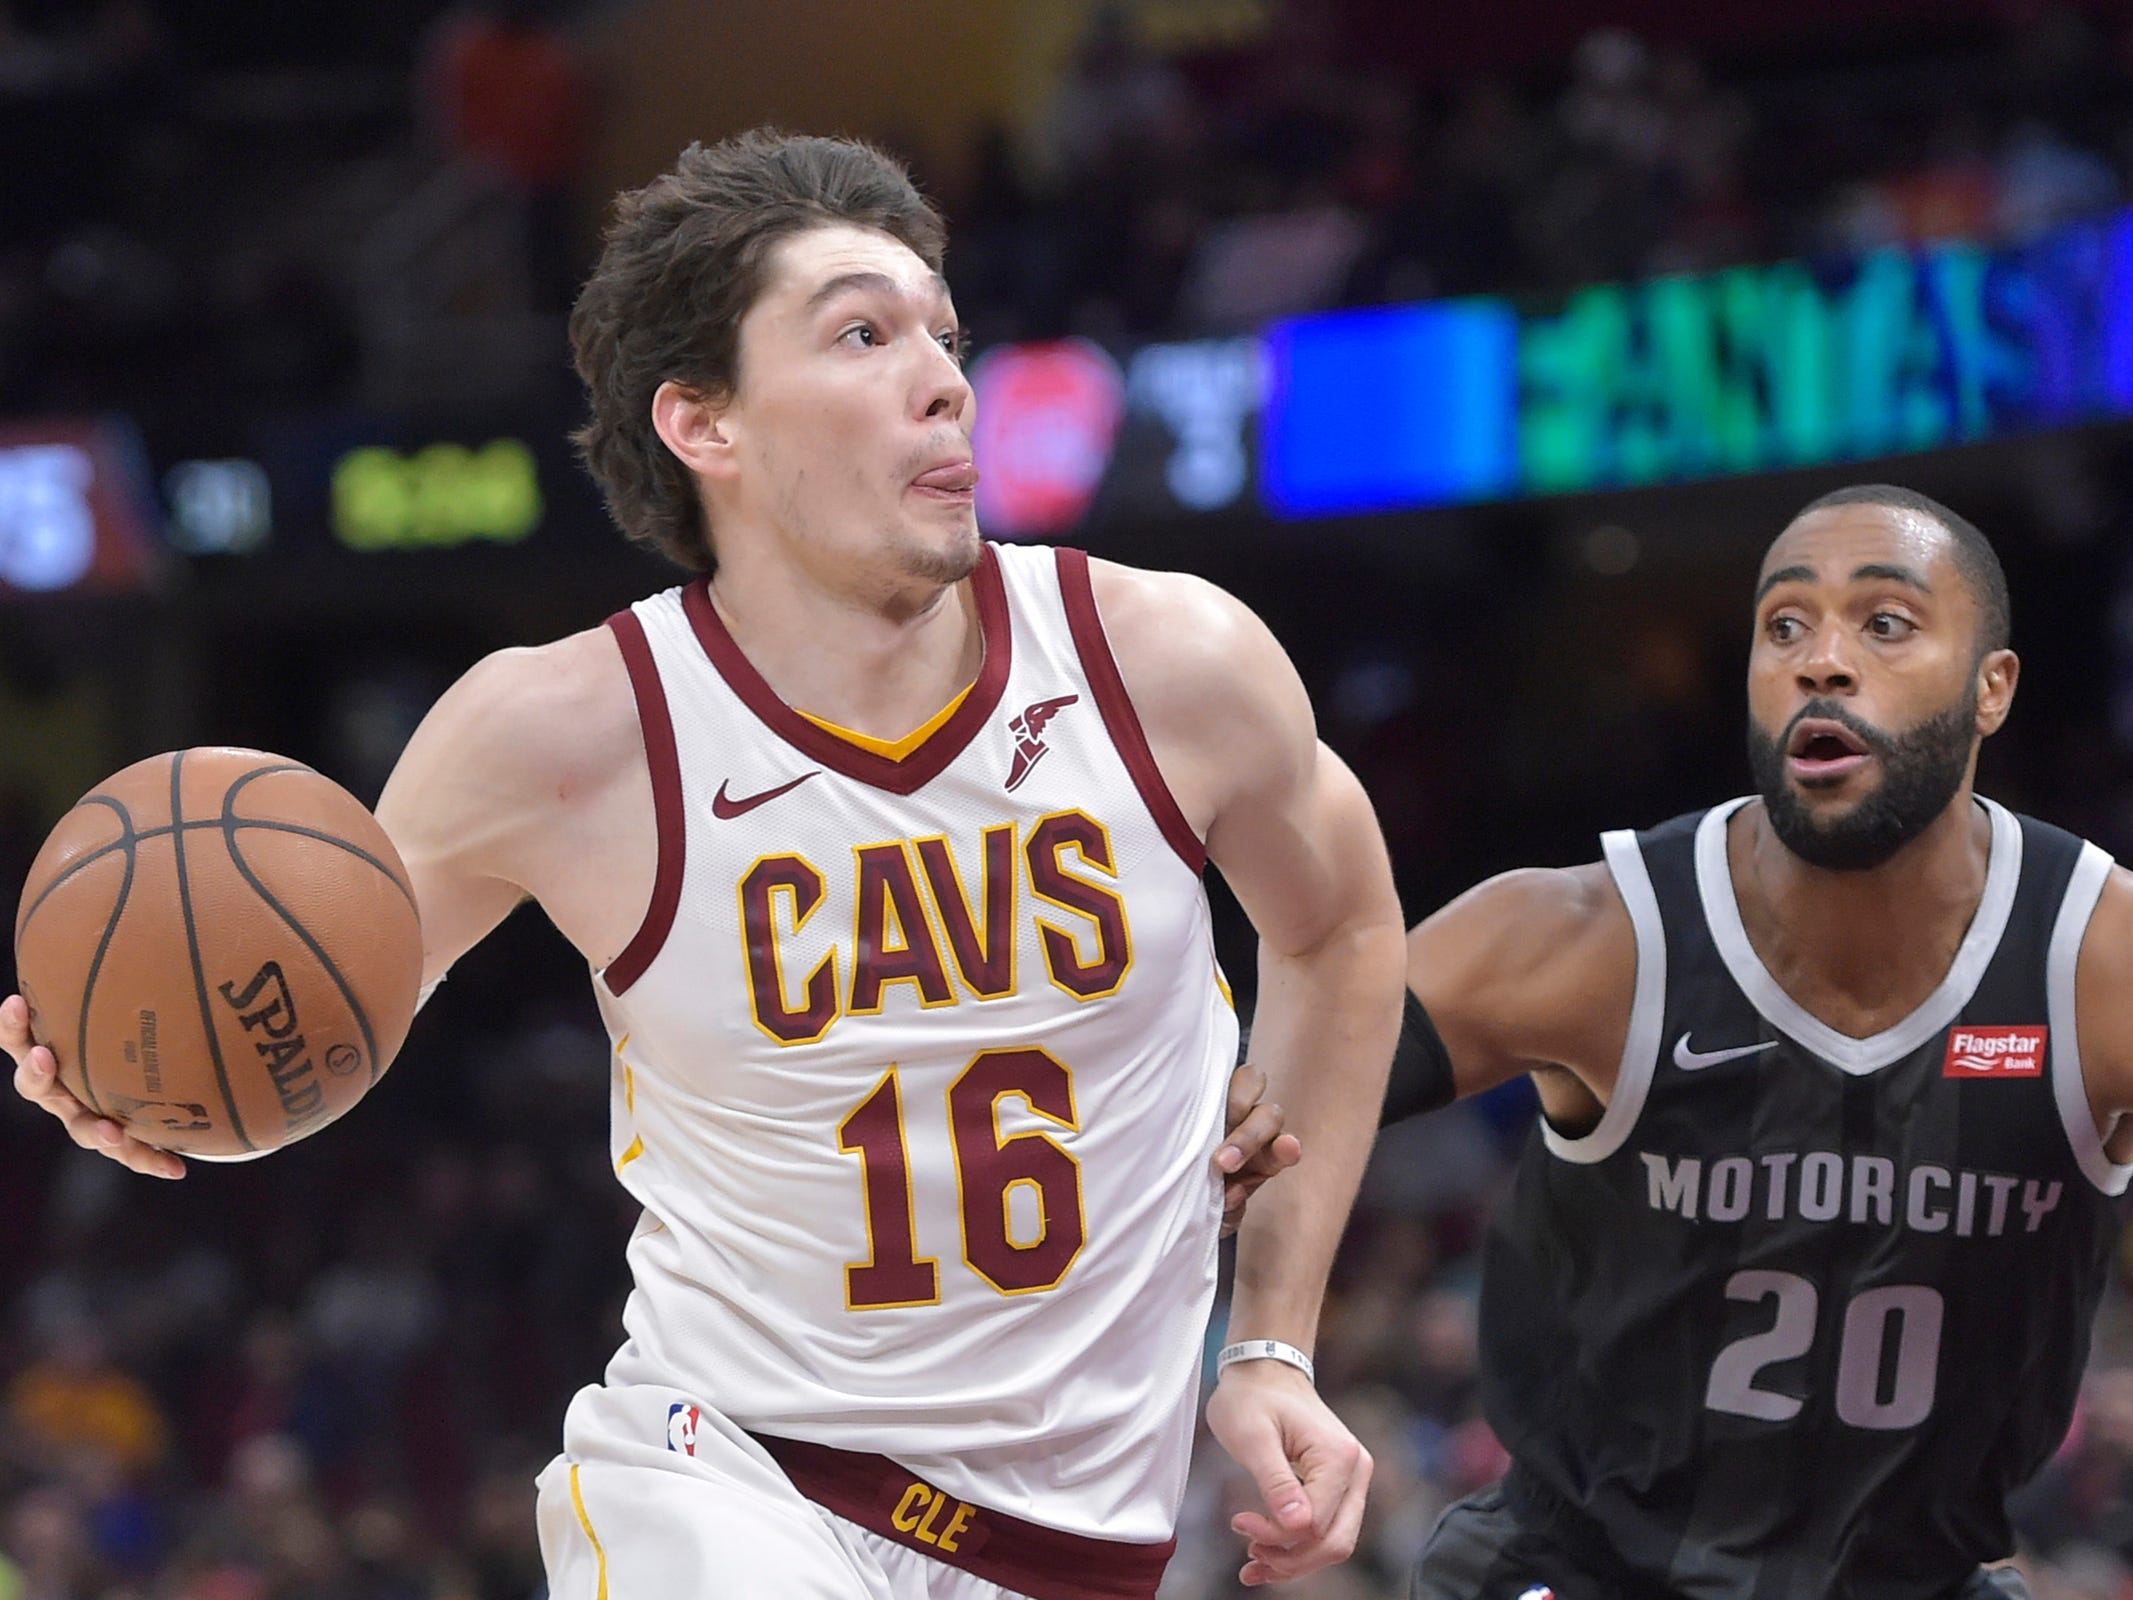 Cleveland Cavaliers forward Cedi Osman drives against Detroit Pistons guard Wayne Ellington in the third quarter at Quicken Loans Arena, March 18, 2019.